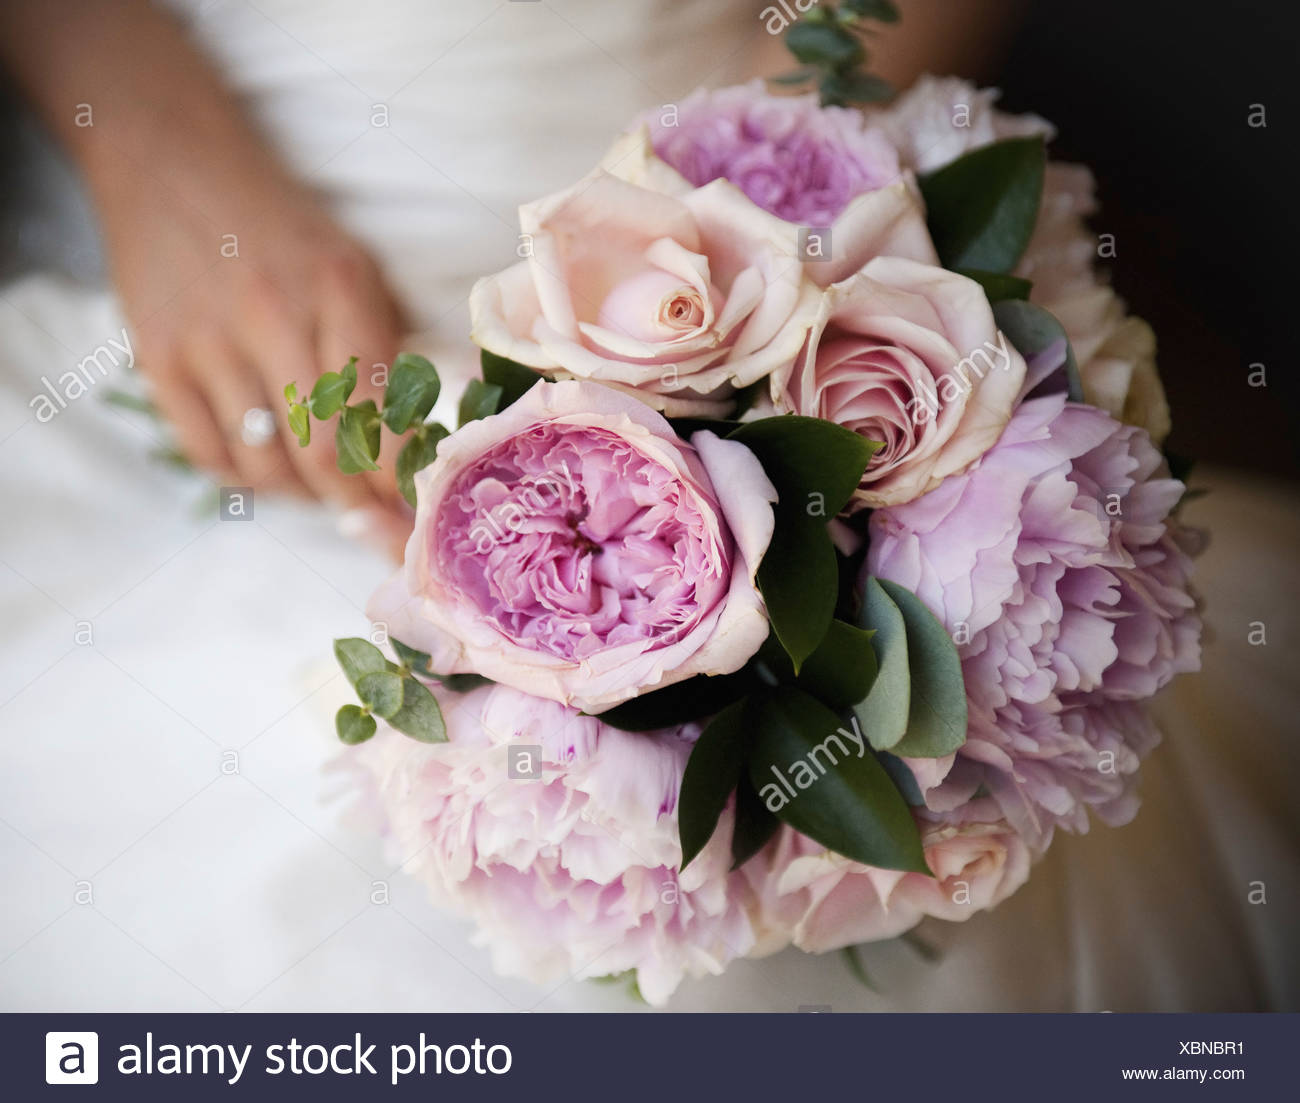 Bouquet Peonie Sposa.A Bride Holding A Wedding Bouquet Of Roses And Peonies Pink And